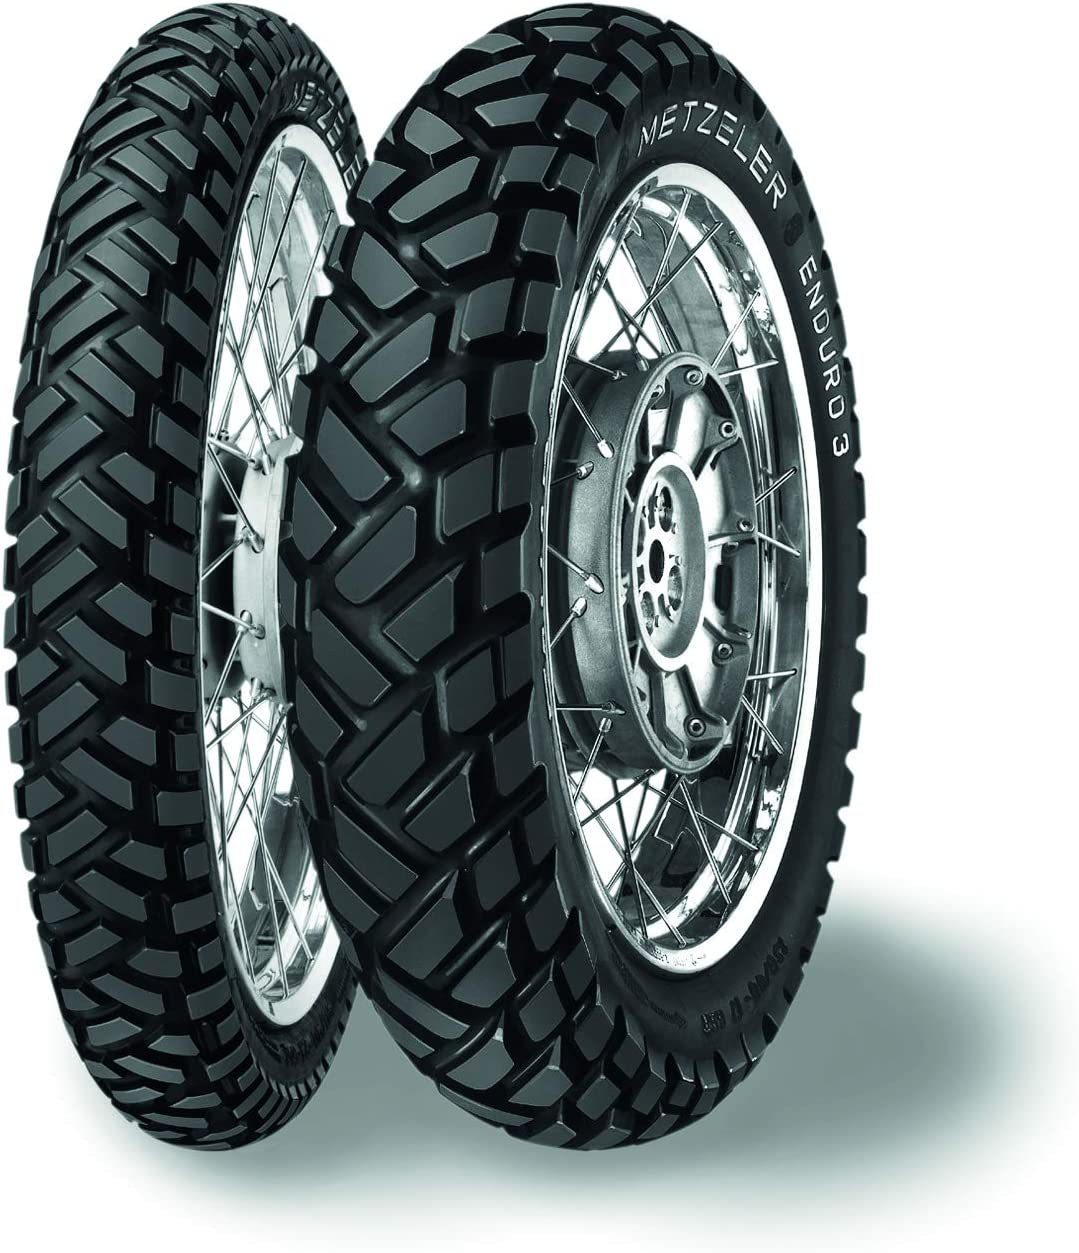 Metzeler Cheap Spring new work one after another SALE Start Enduro 3 Sahara Rear Motorcycle 140 Tire Typ 80-18 Tube